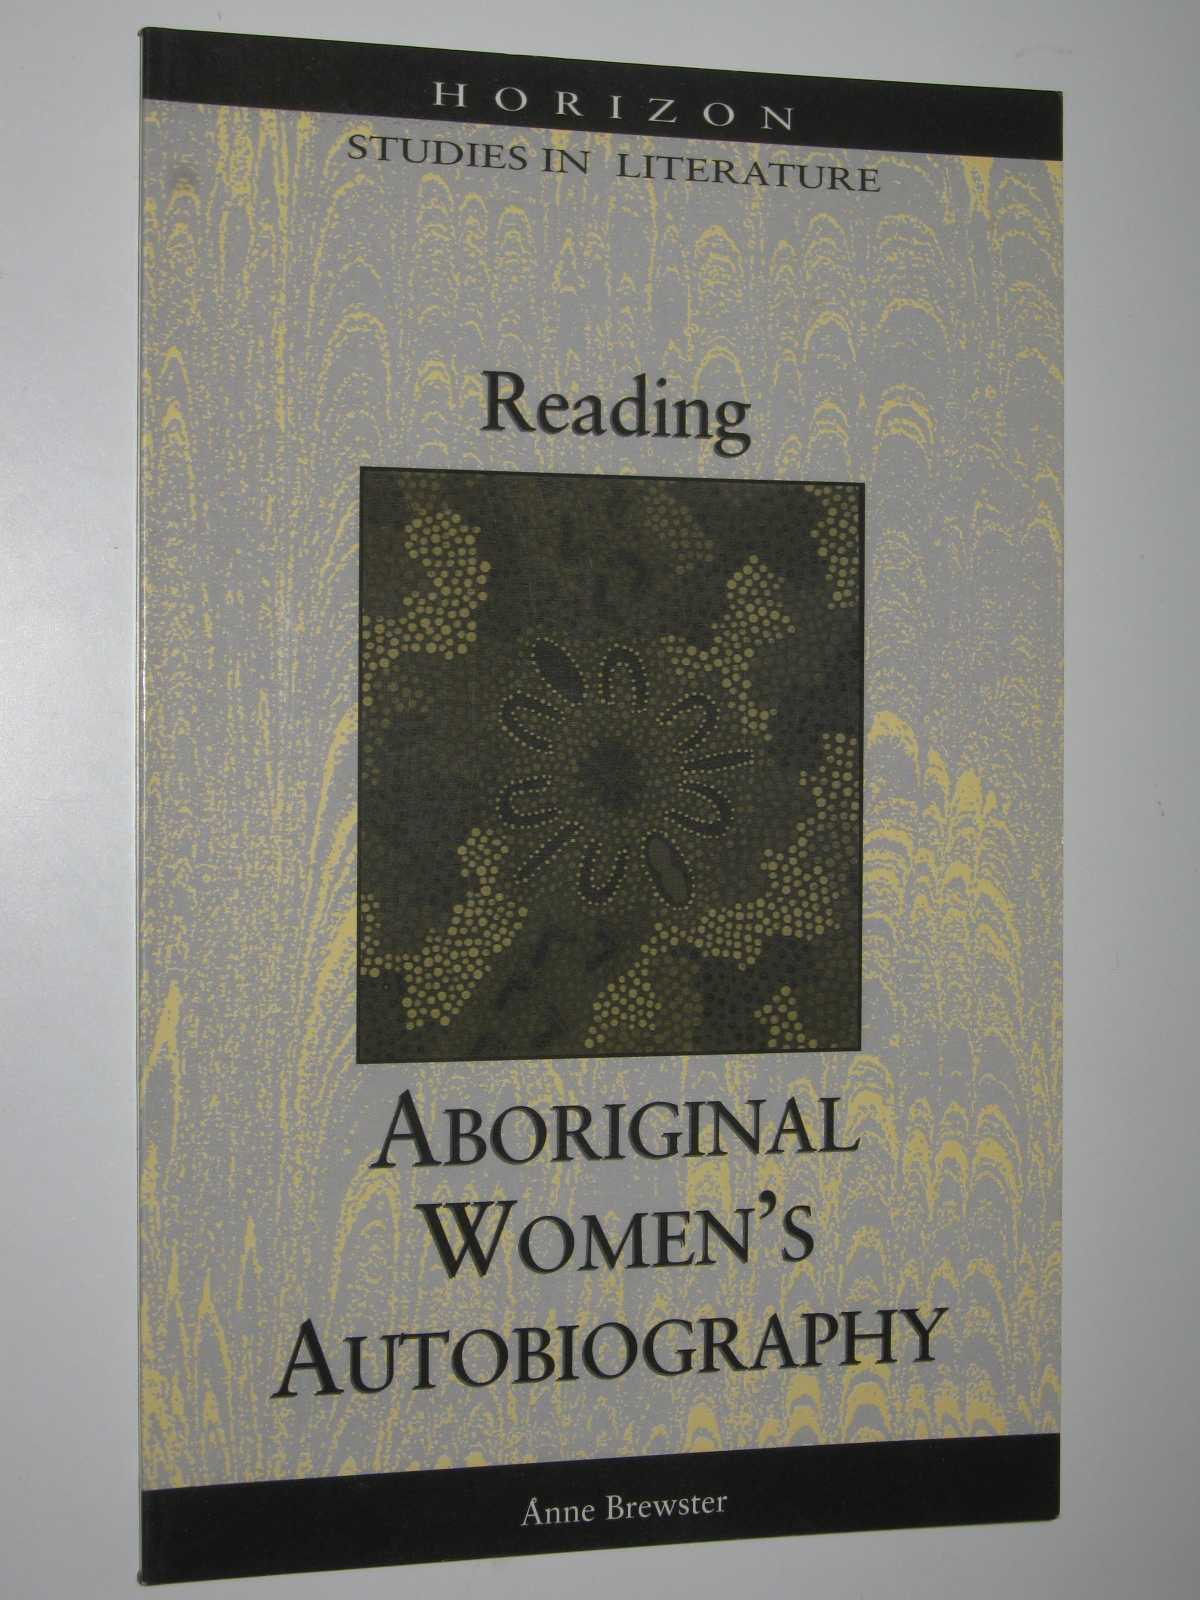 Image for Reading Aboriginal Women's Autobiography - Horizon Studies in Literature Series